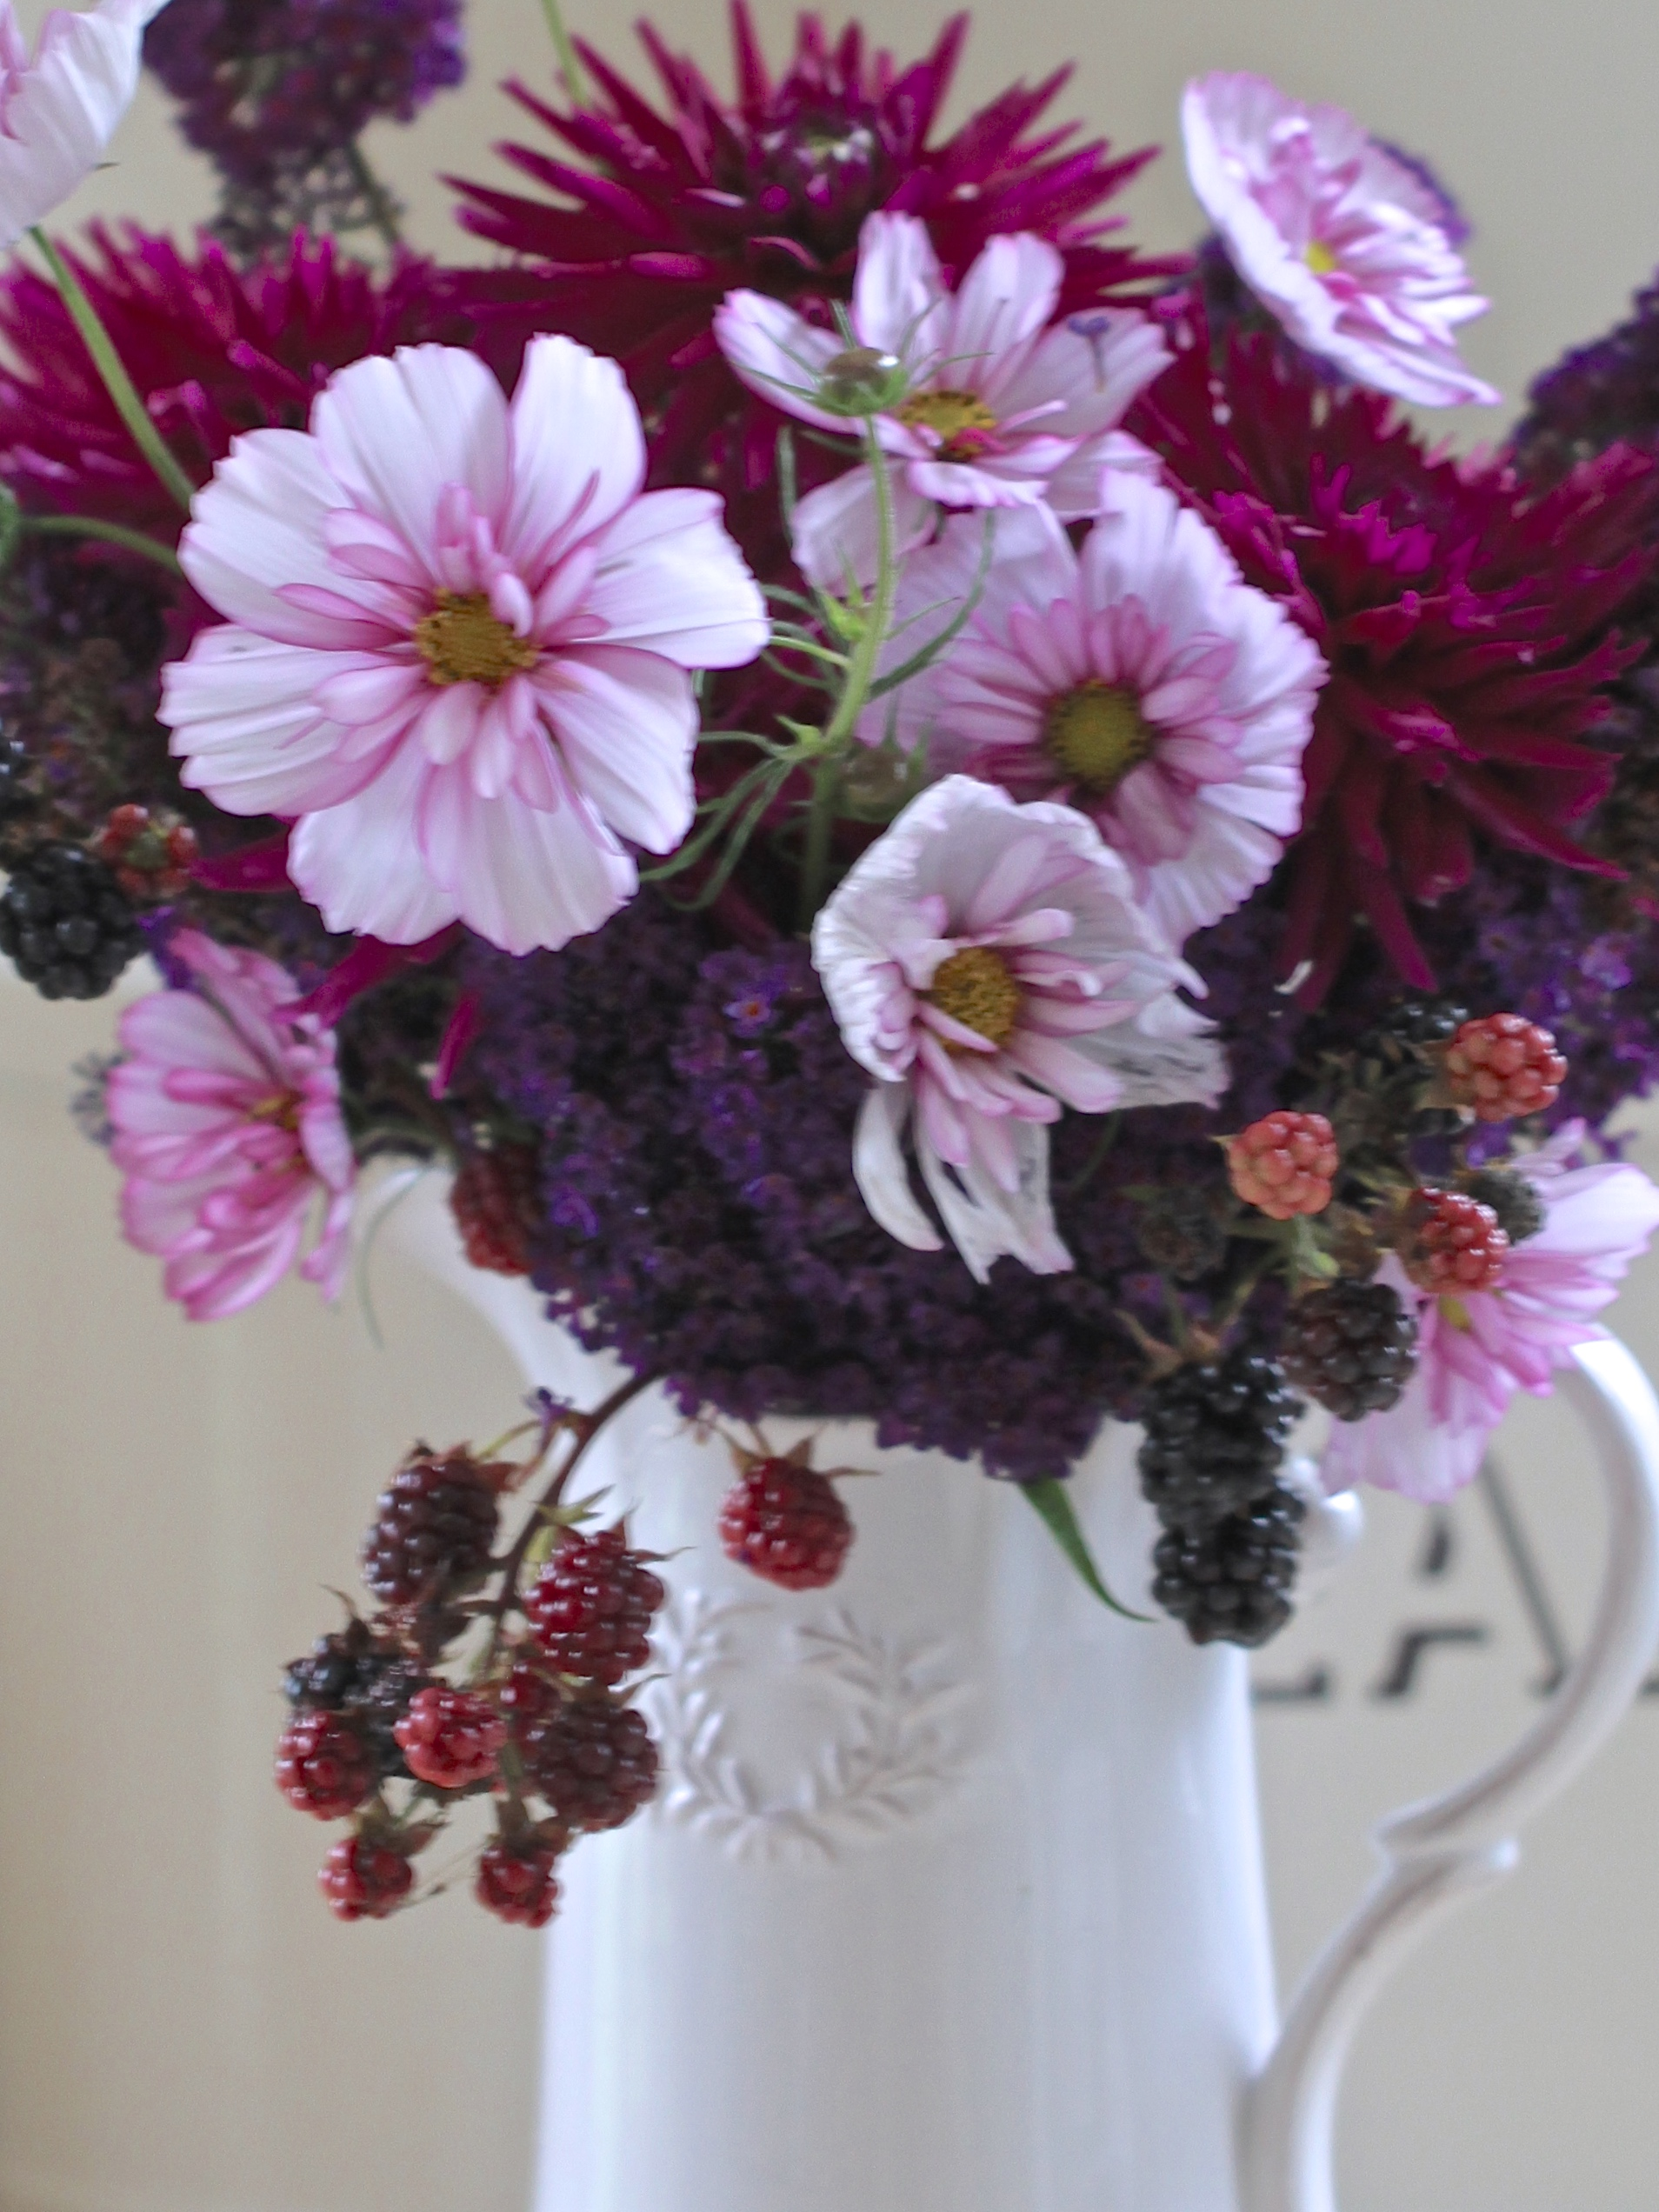 Buddleja-Dahlia-and-Cosmos-Vase